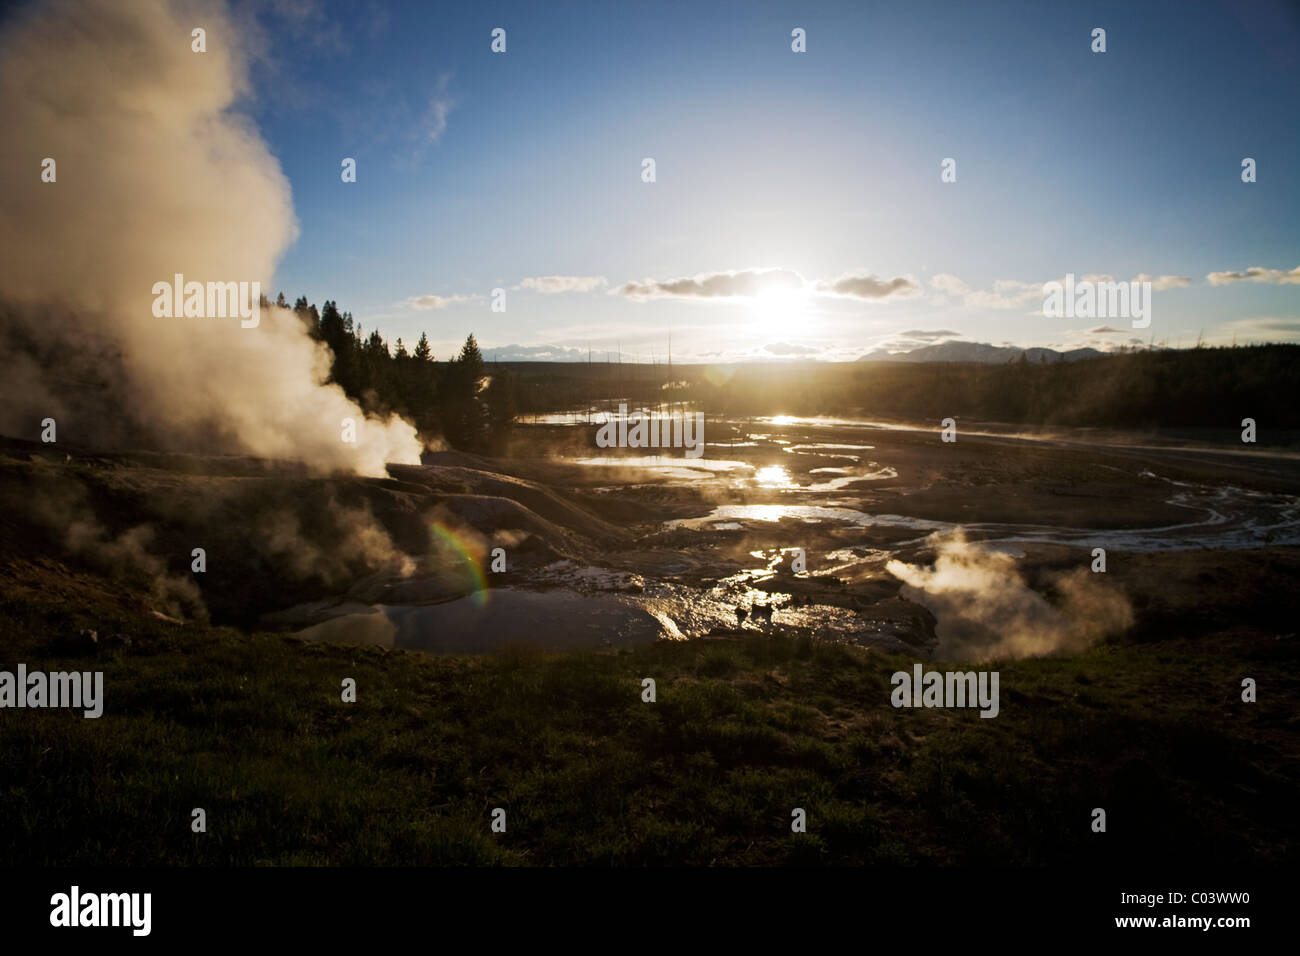 Black Growler steam vent and view over Porcelain Basin, Norris geothermal area, Yellowstone national park, Wyoming, - Stock Image